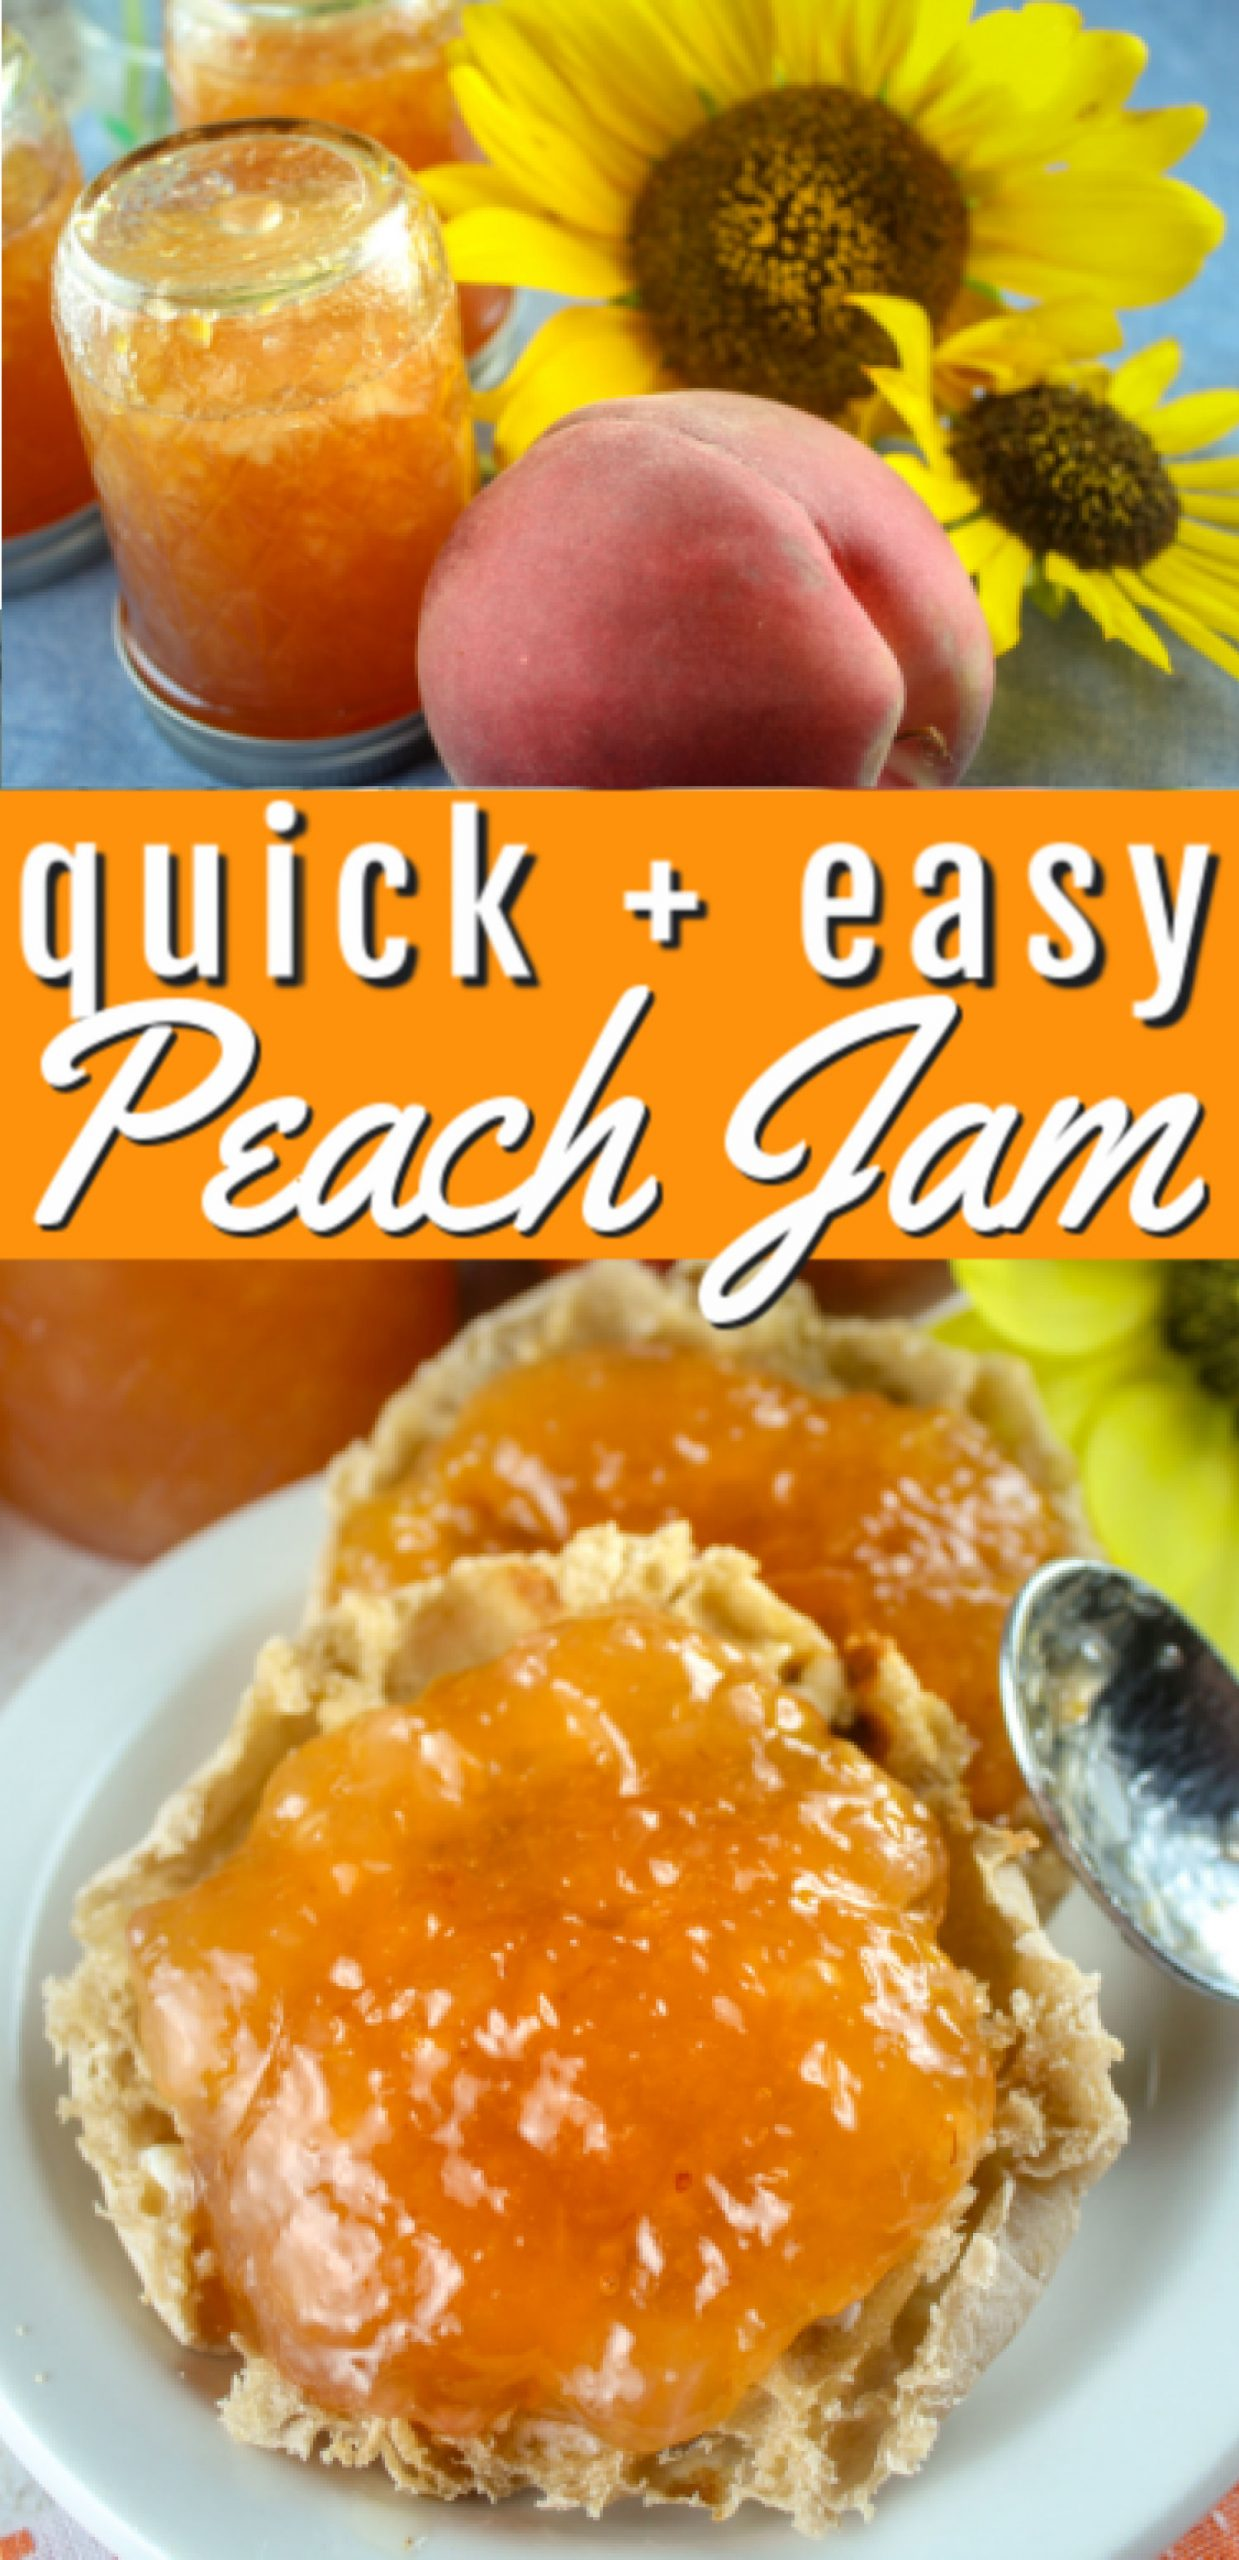 Summer fruit season is my favorite - with so many delicious options! I got a bunch of peaches recently and decided to make some peach jam - from scratch! I'll tell you - it's so good - I've eaten two jars of it already.  via @foodhussy